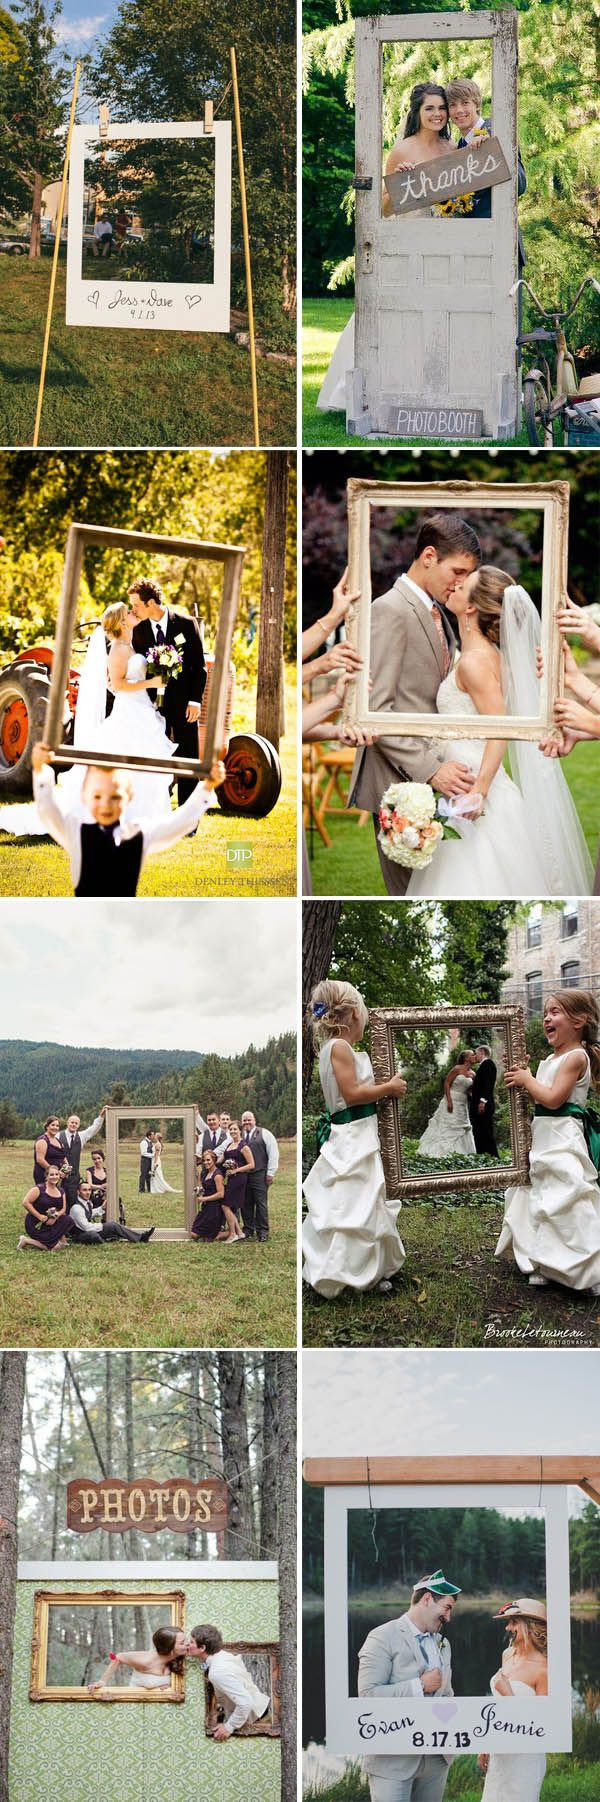 25 Awesome Wedding Ideas With Frames | Pinterest | Photo booth ...